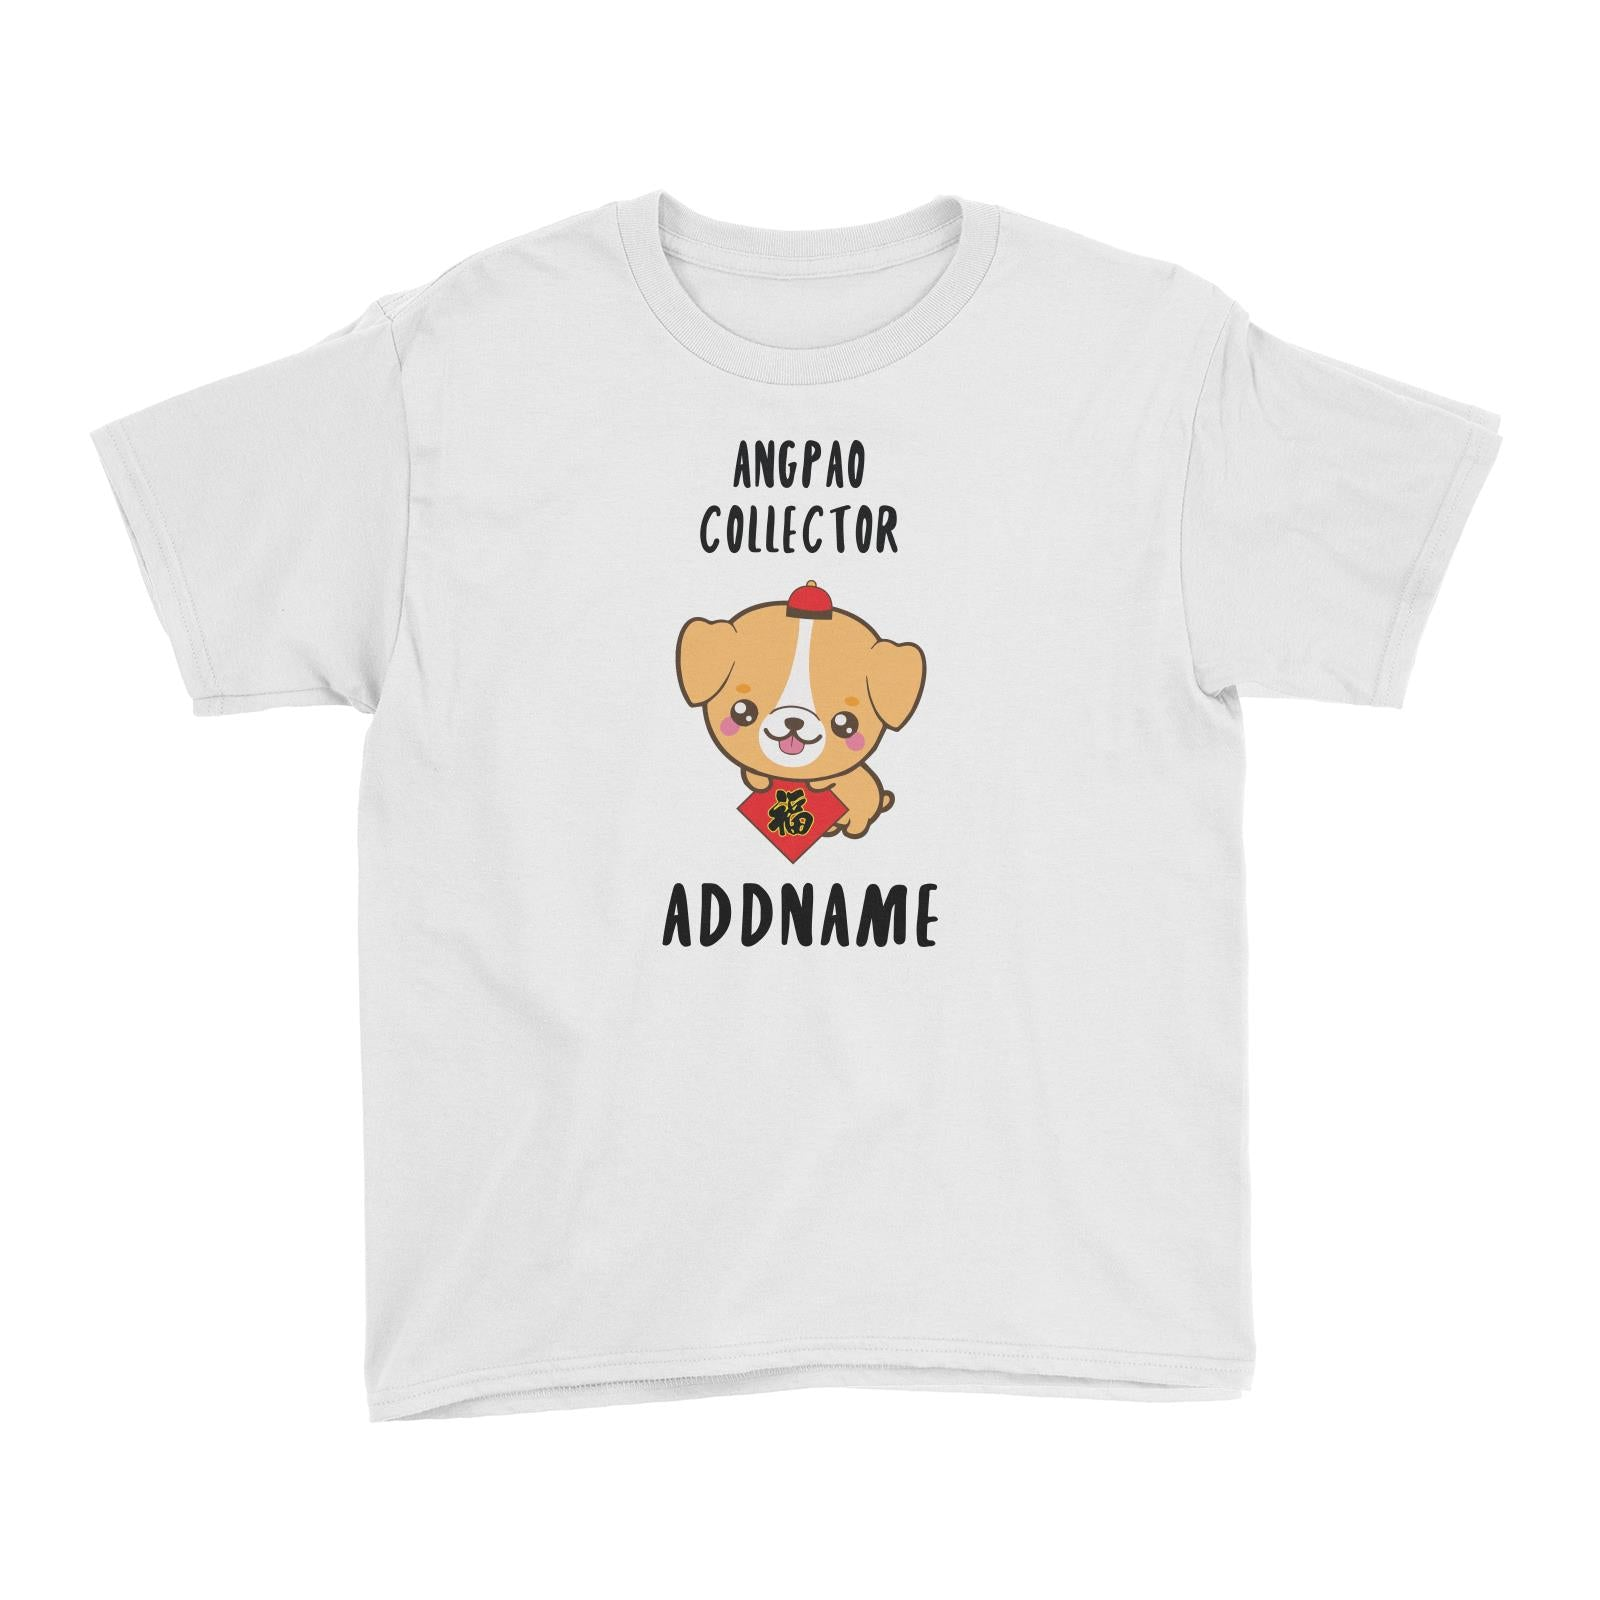 Chinese New Year Cute Dog Ang Pao Collector Kid's T-Shirt  Personalizable Designs 1st CNY Funny